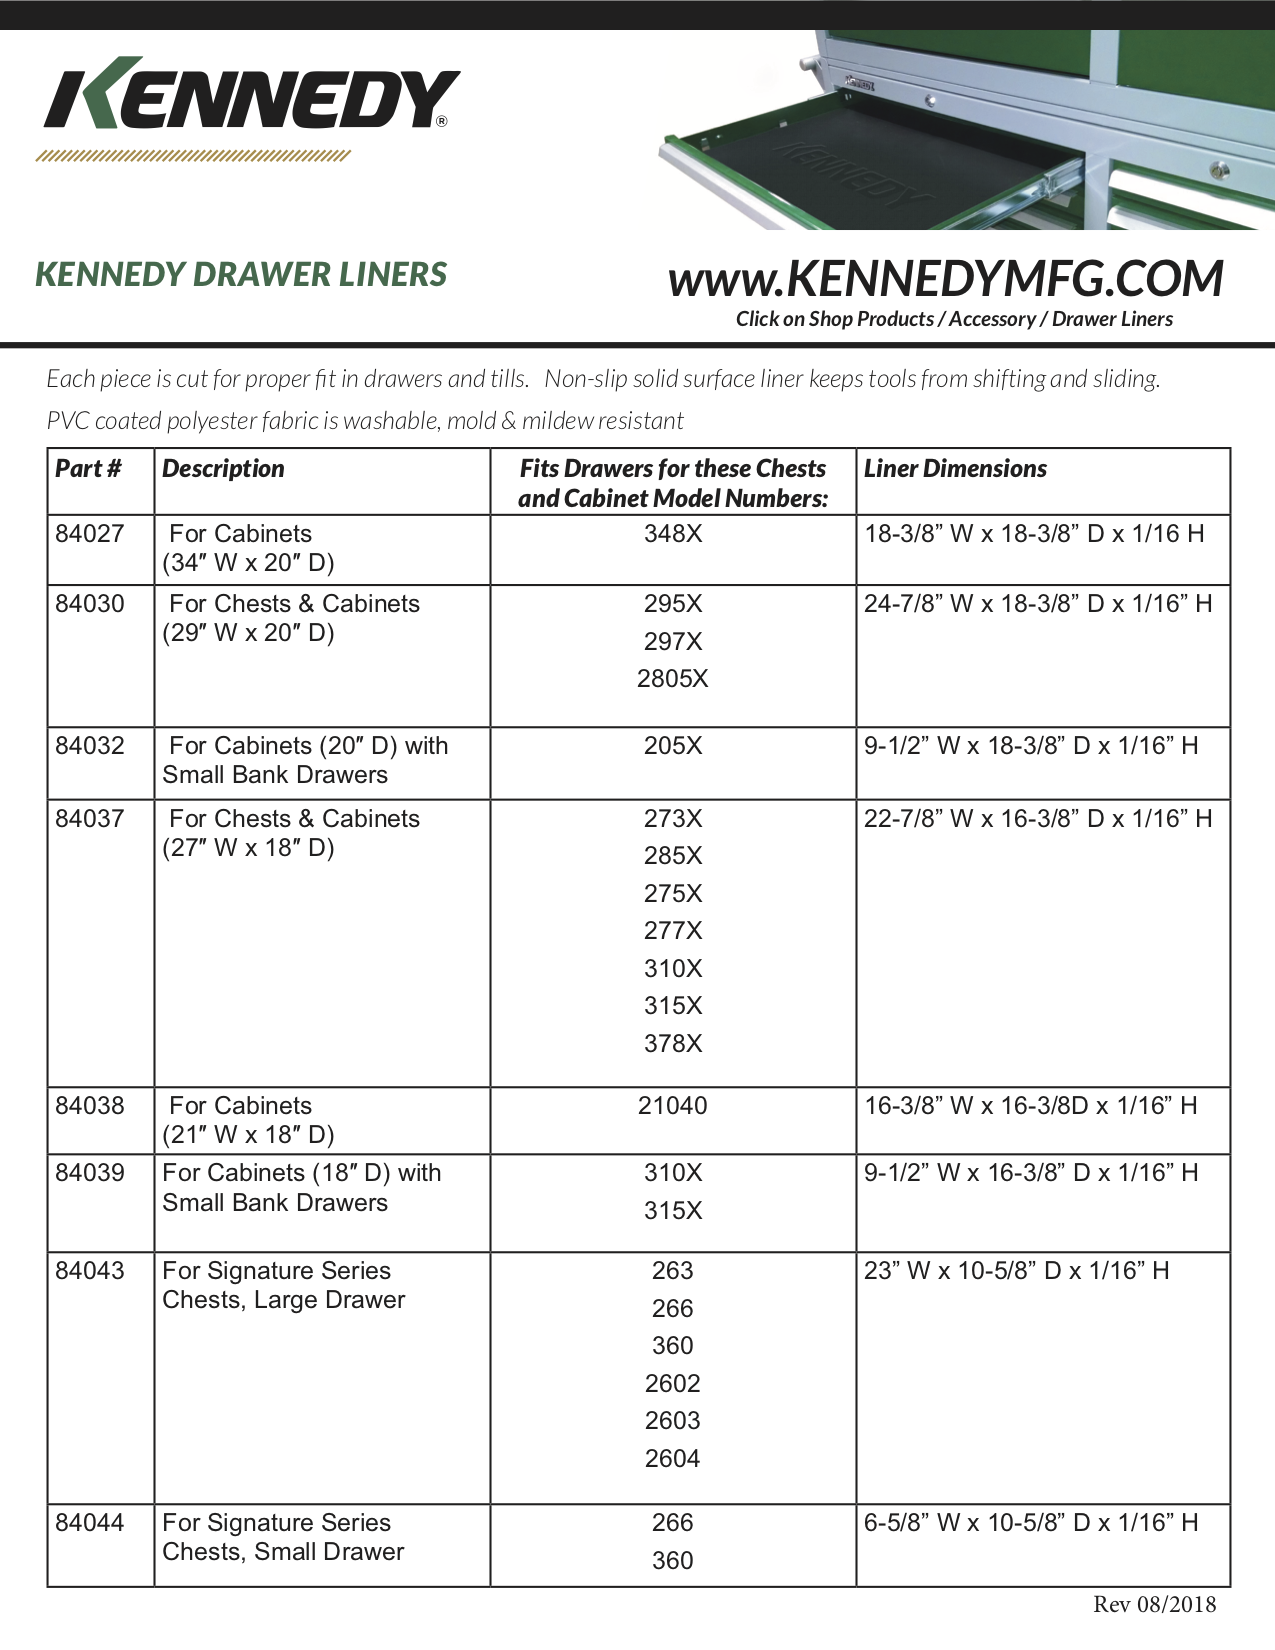 Kennedy Drawer Liners